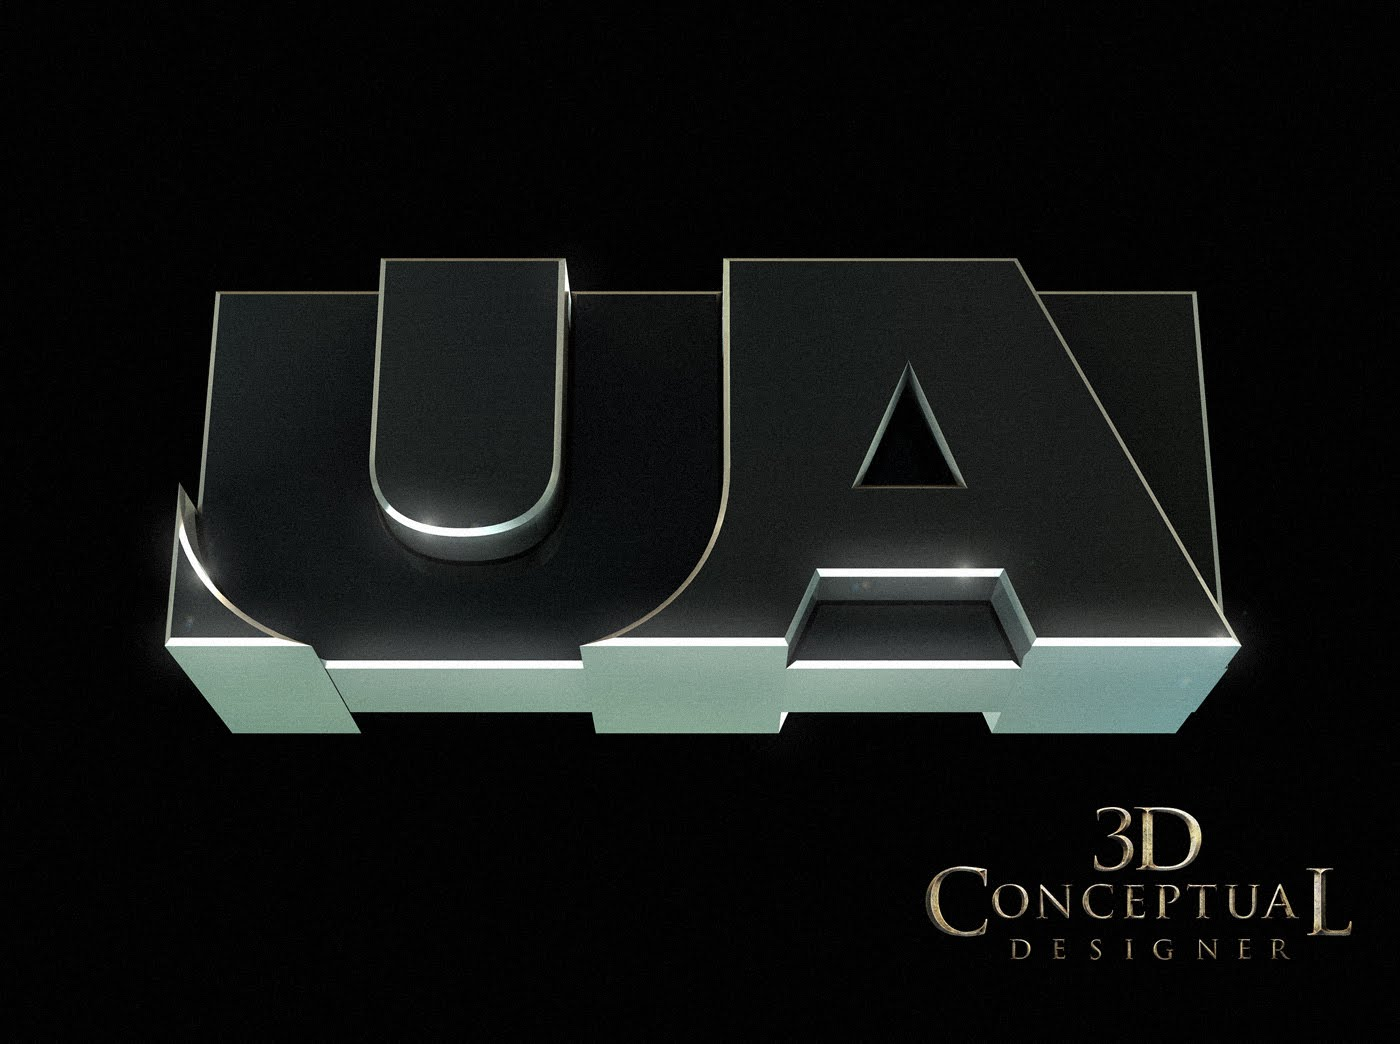 3dconceptualdesignerblog project review united artists logo update